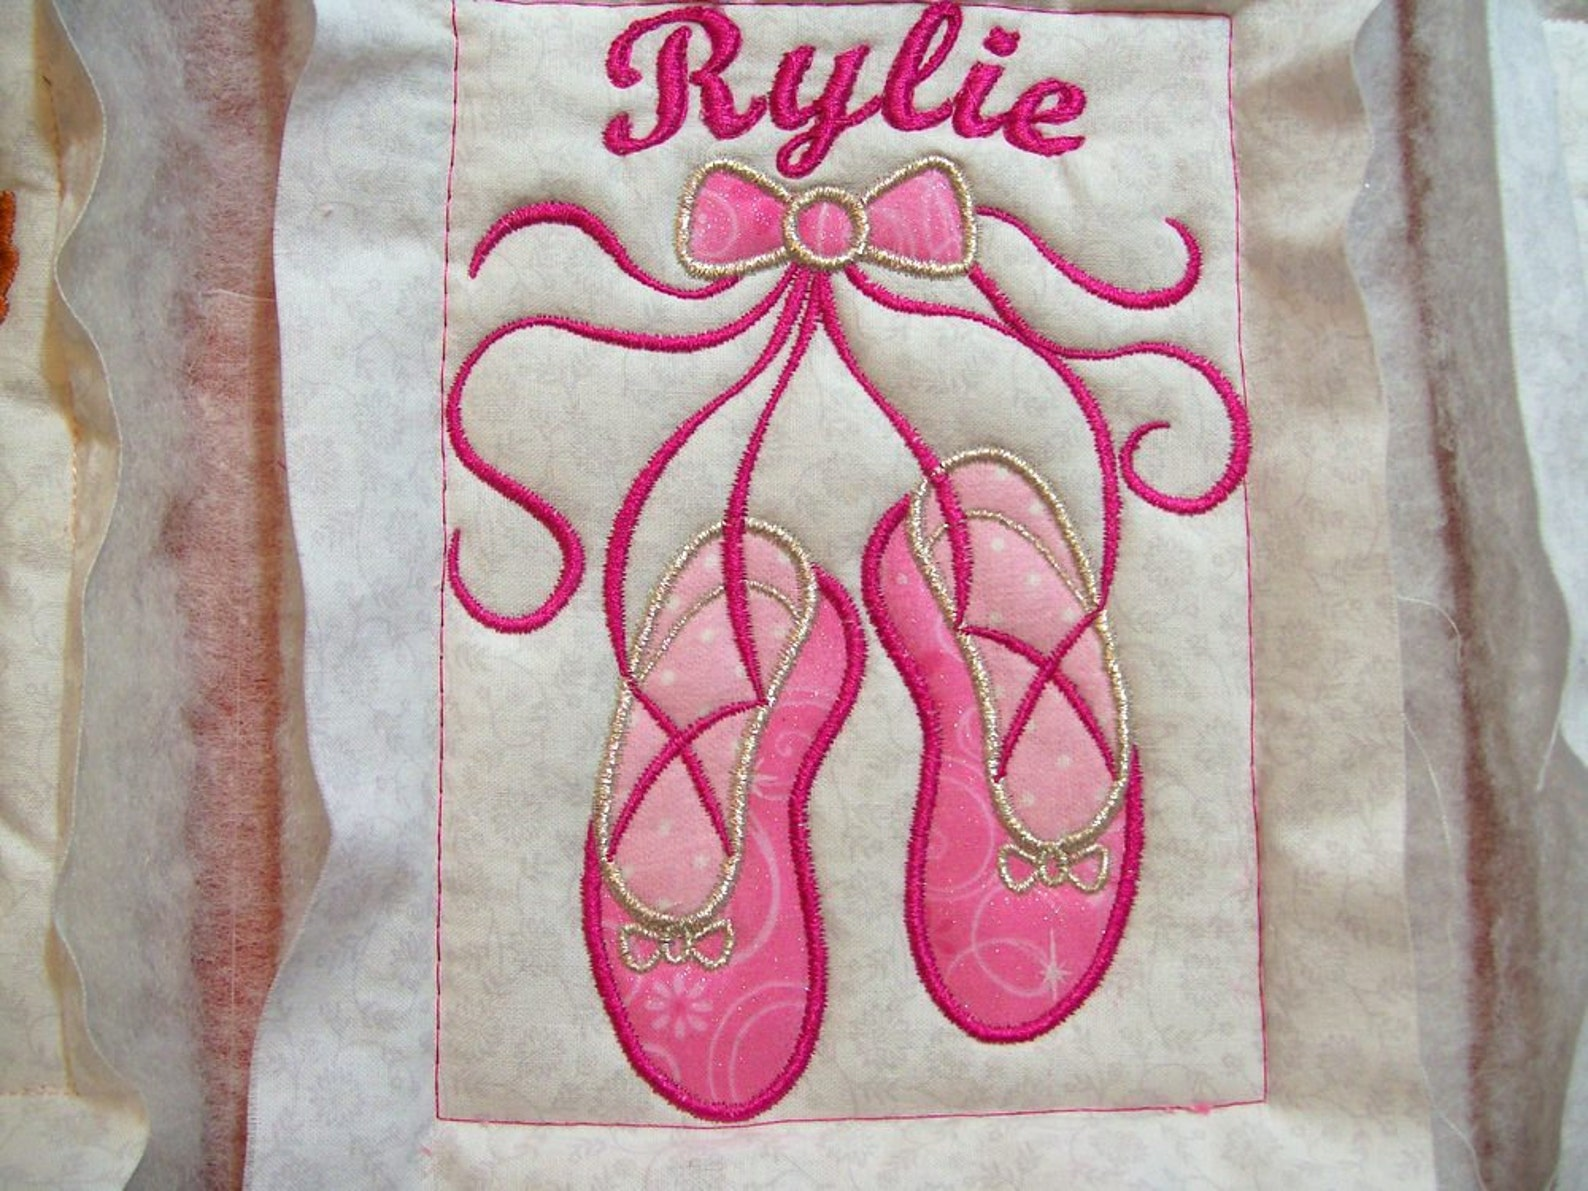 ballet shoes machine embroidery applique design - for 4x4,5x7, 6x10 hoop